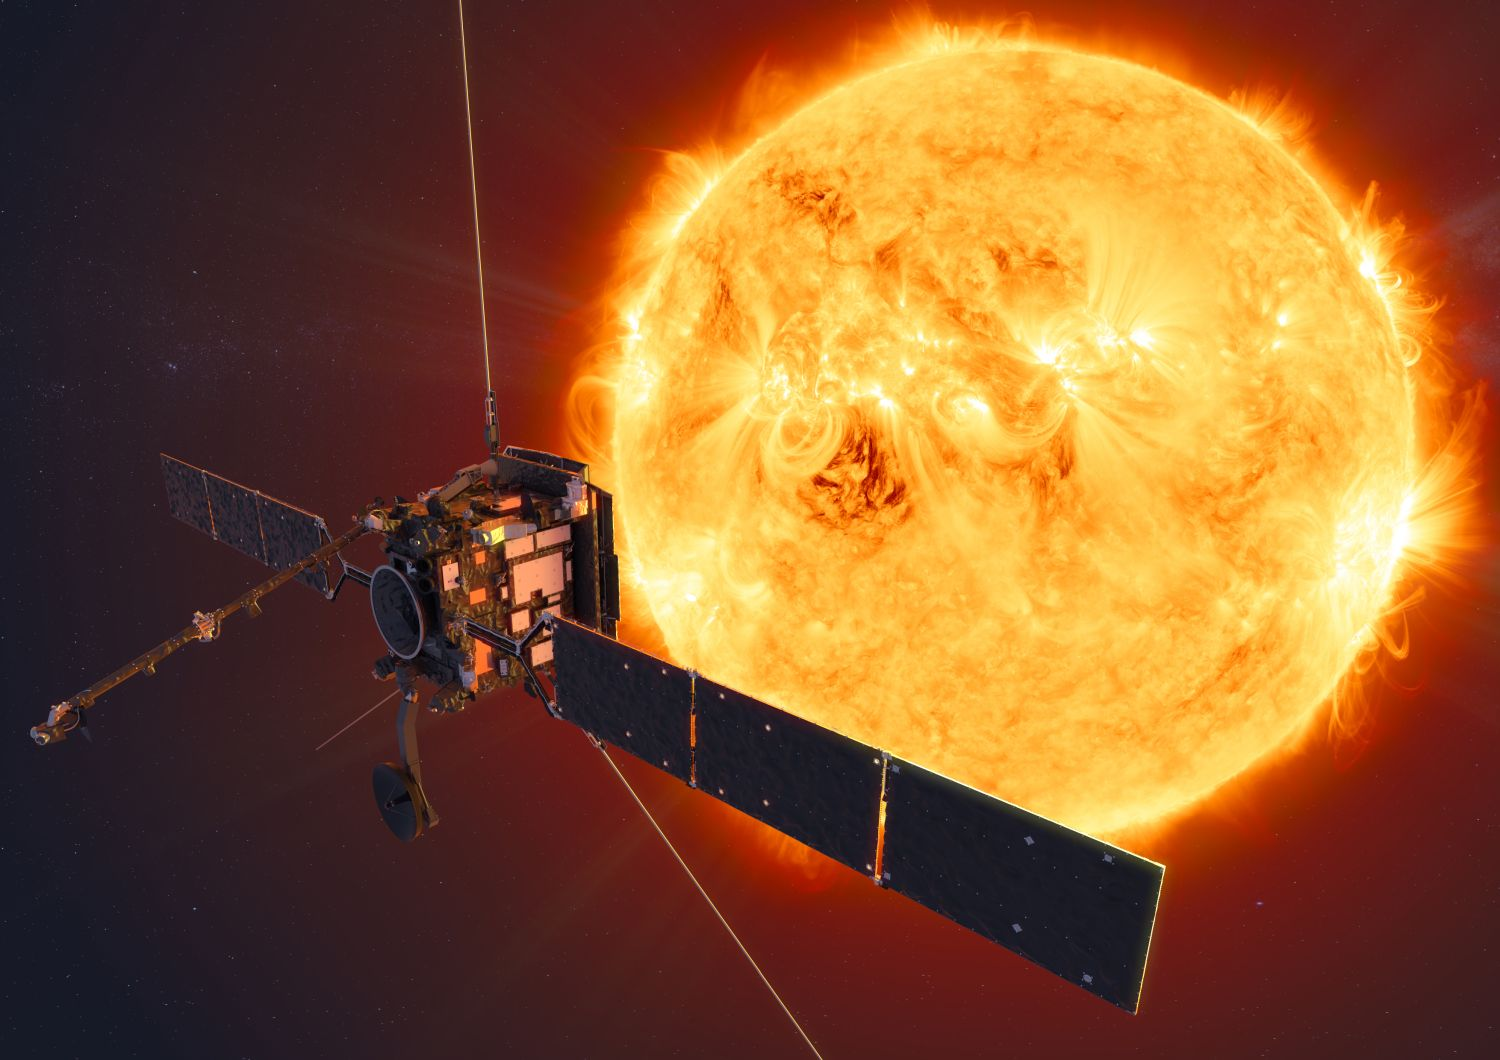 ESA's Solar Orbiter mission will face the Sun from within the orbit of Mercury at its closest approach.